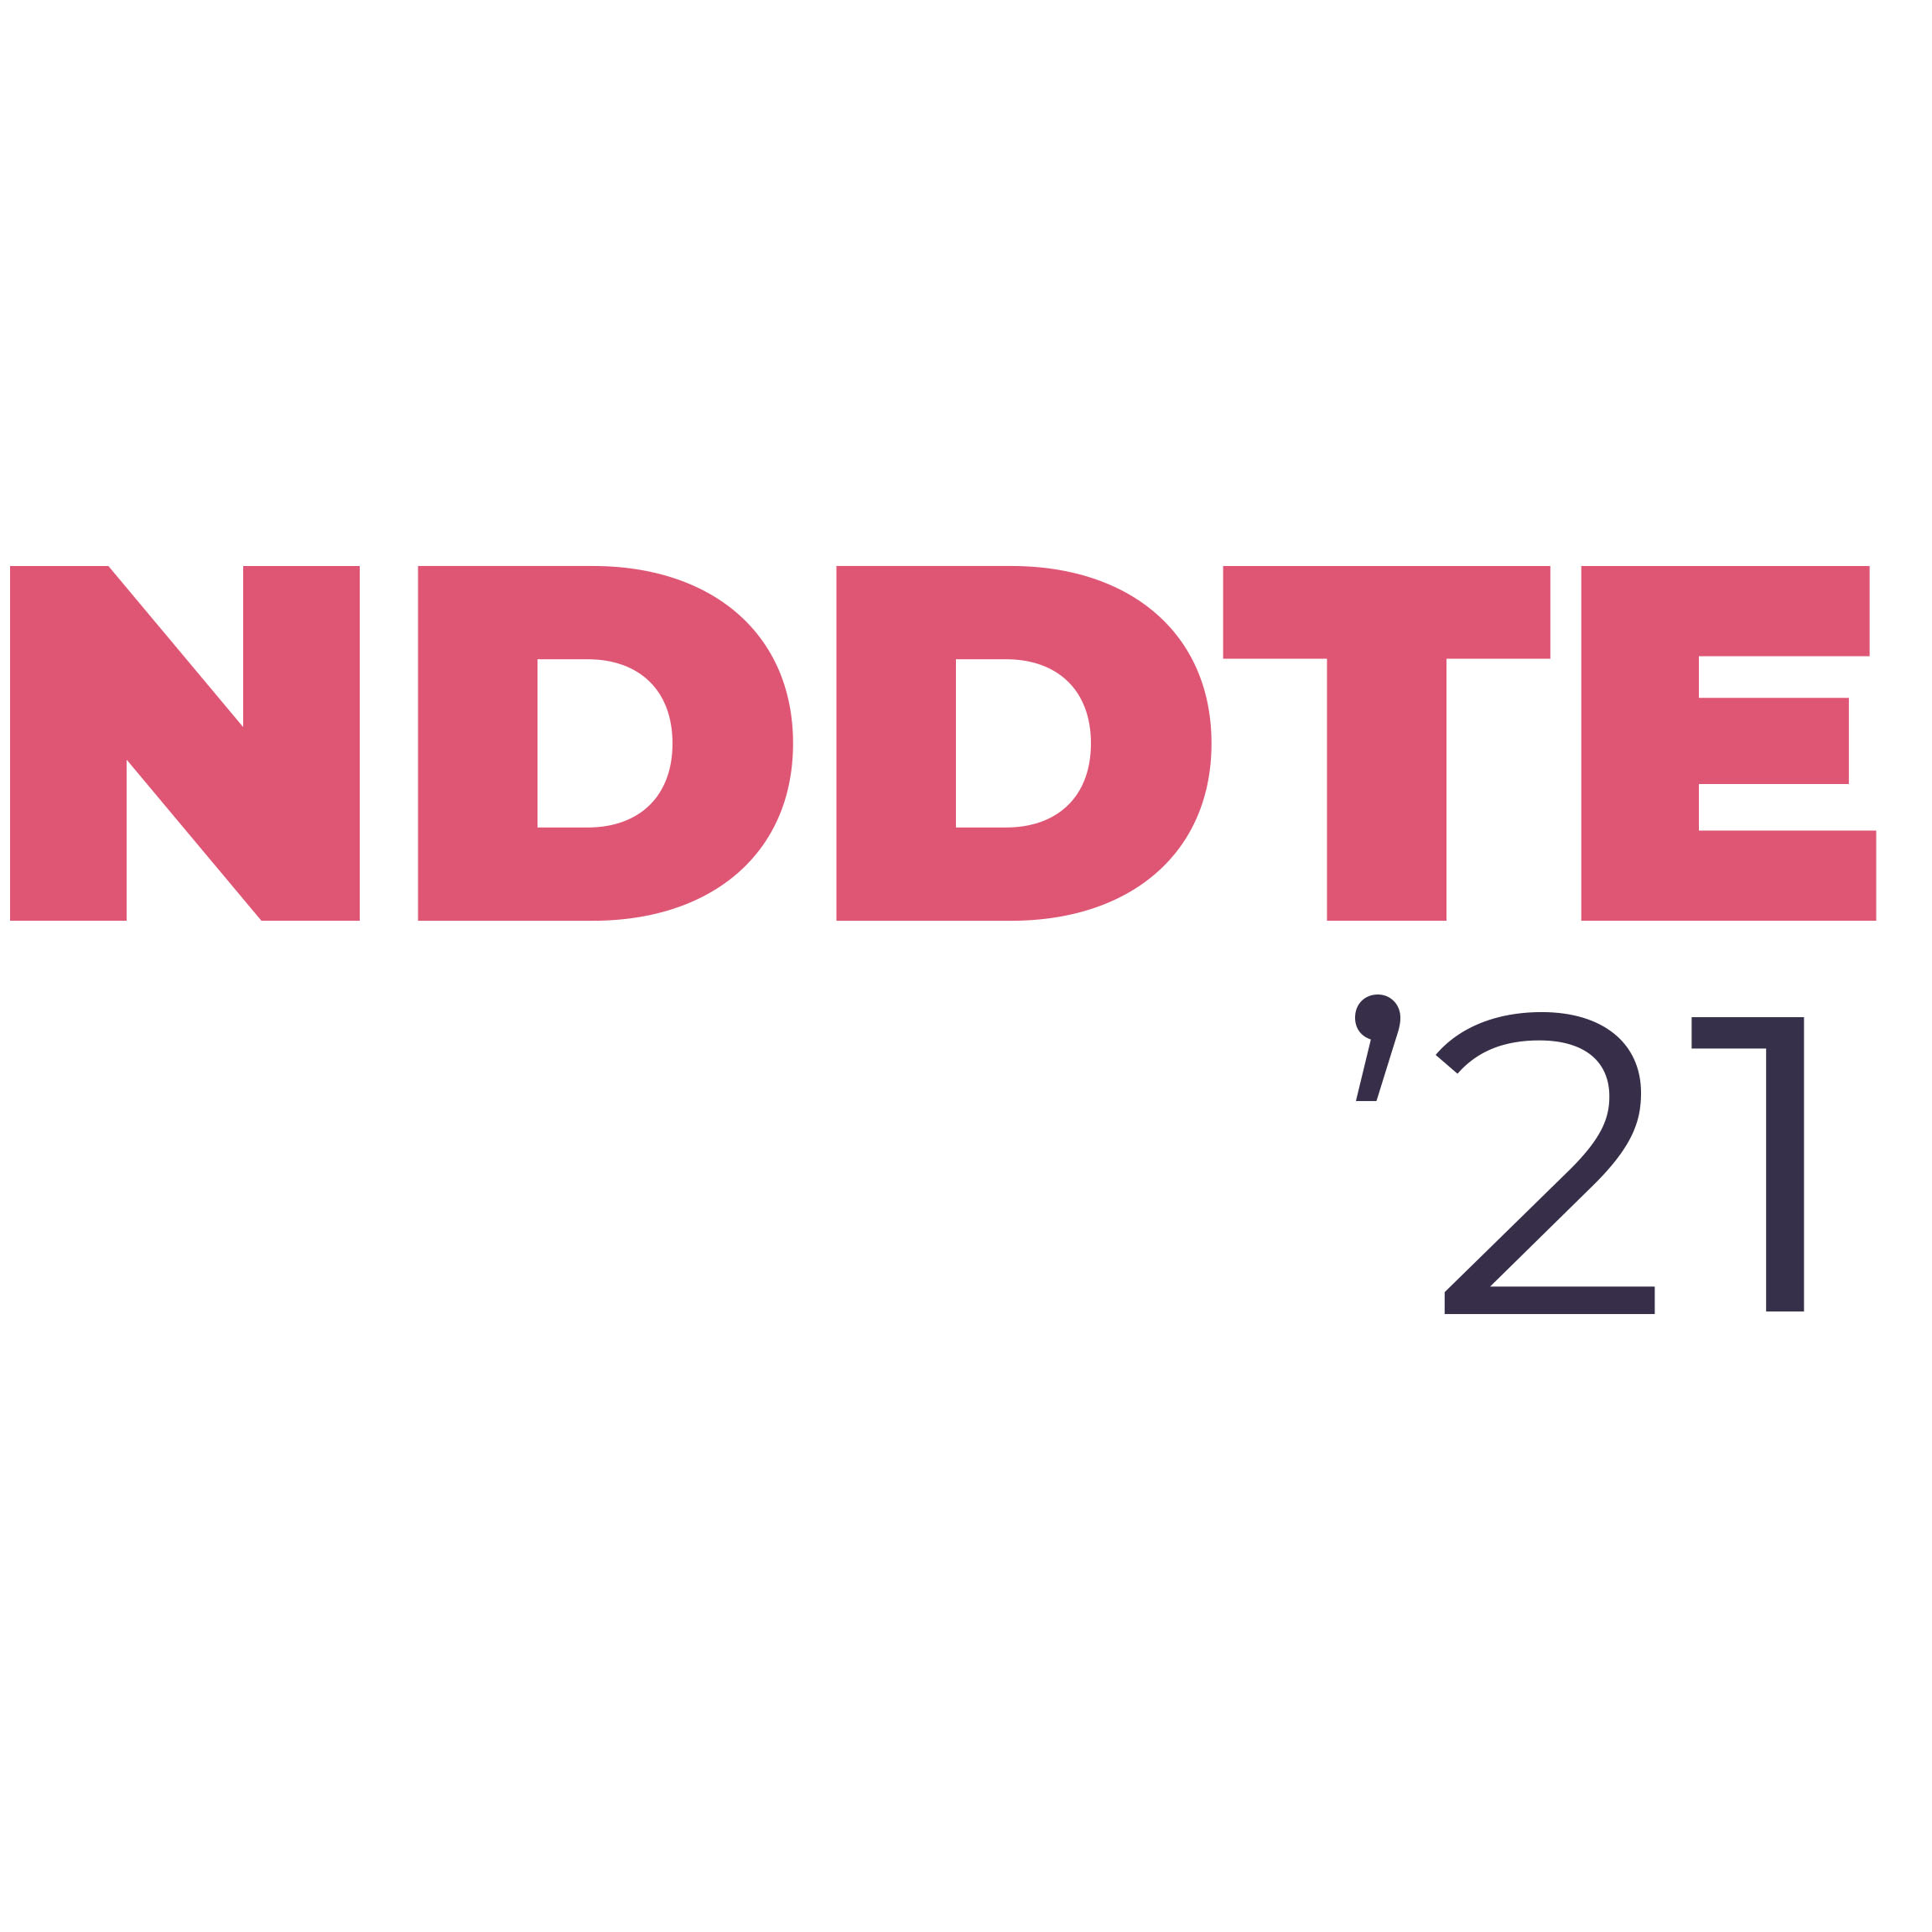 7th International Conference on Nanomedicine, Drug Delivery, and Tissue Engineering (NDDTE'21)